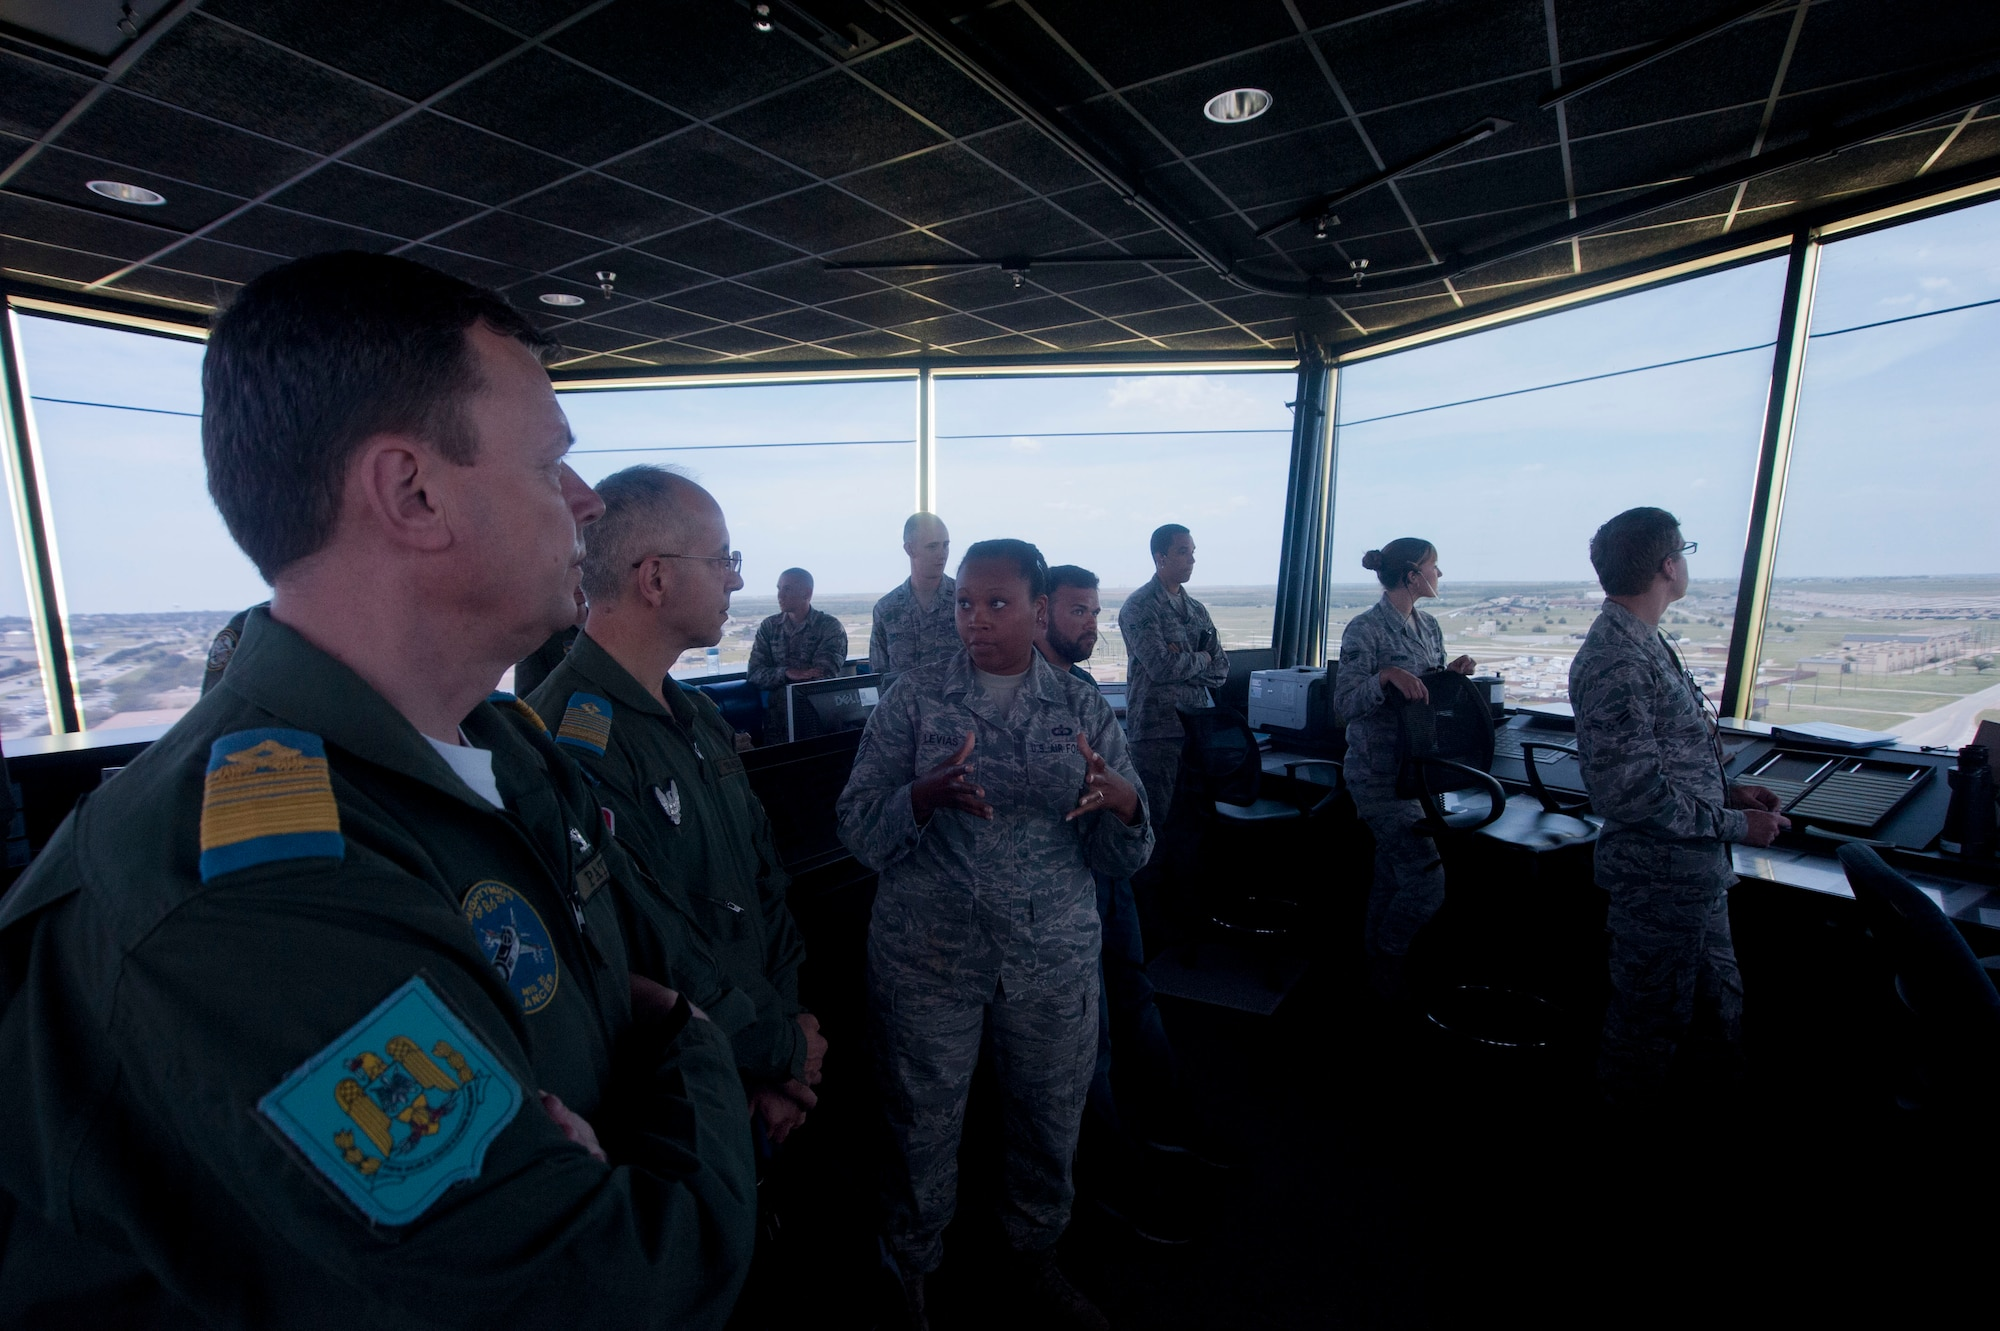 Members of the Romanian air force visited Sheppard Air Force Base, Texas, July 8, 2014, to gain knowledge of the Euro-NATO Joint Jet Pilot Training program. The visit was meant to establish international bonds and potential joint training ventures. (U.S. Air Force photos/Airman 1st Class Jelani Gibson)